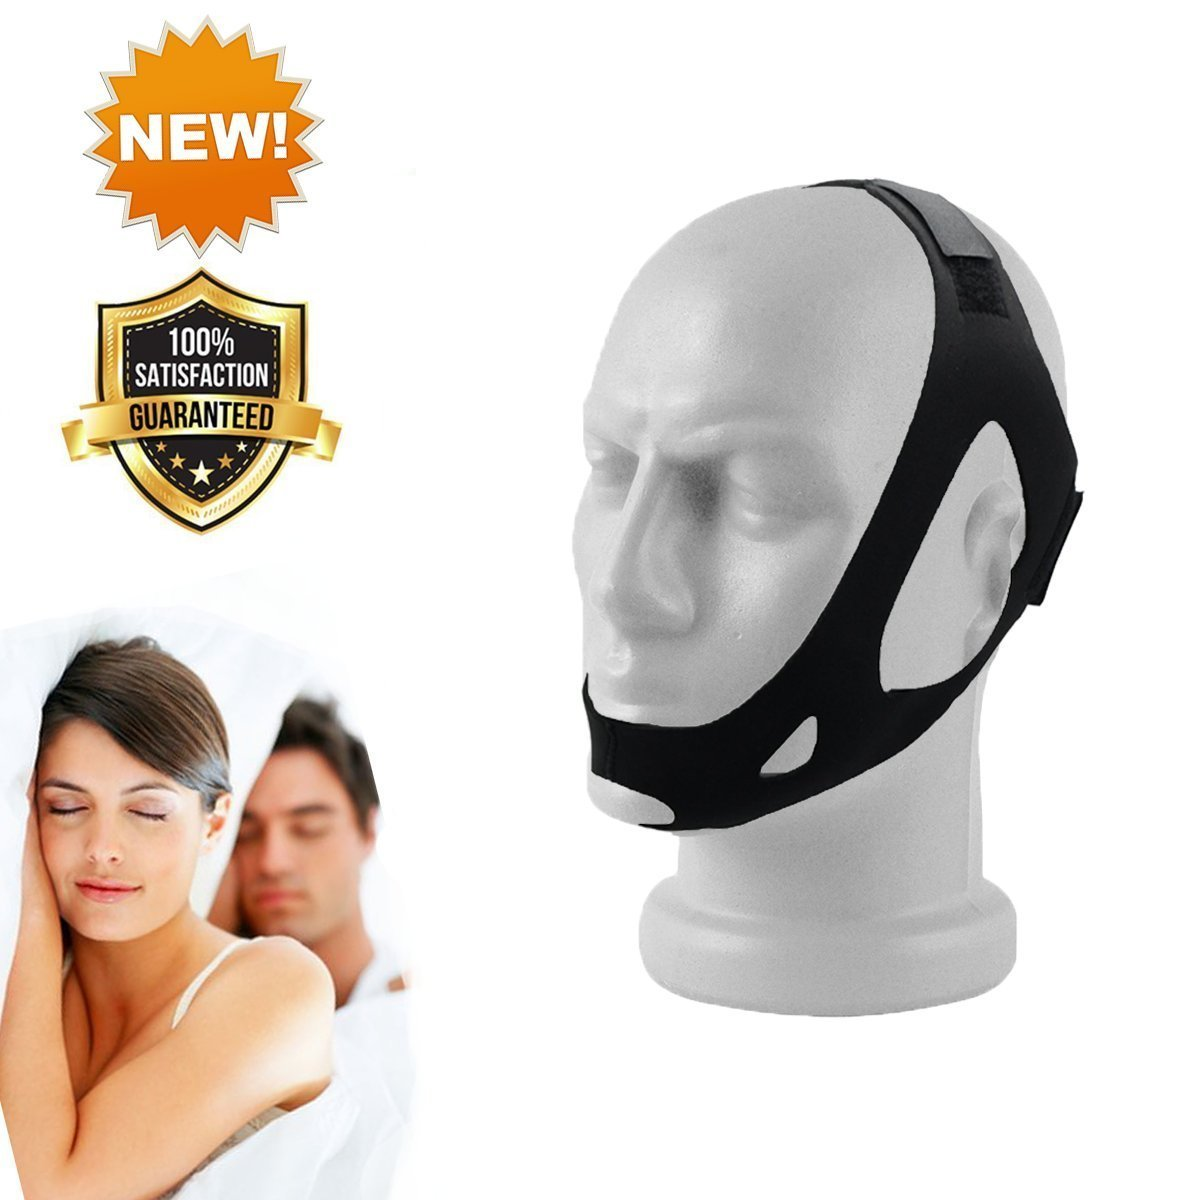 Stop Snore Chin Strap for Snoring - Adjustable Anti Snore Stopper Device - Anti Snoring Aids - Snore Solution - Chin Strap for Men the Chin Strap for Women